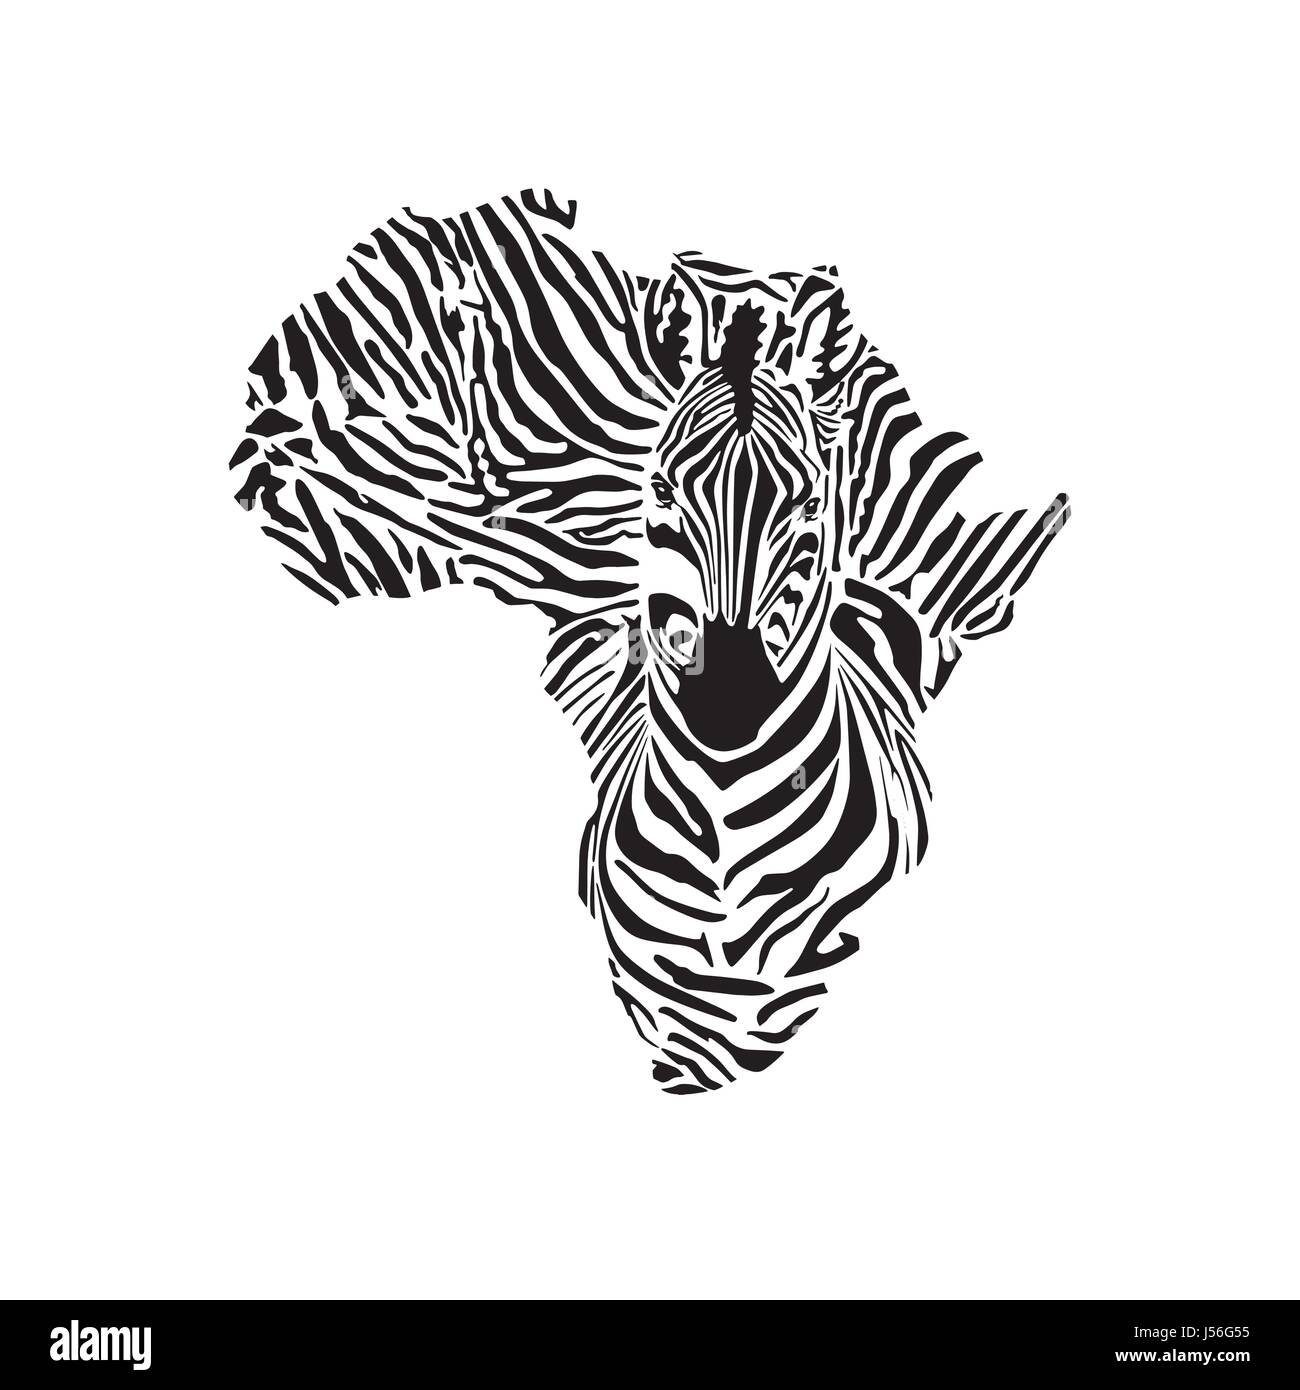 africa and zebra tattoo design stock vector art illustration vector image 140900625 alamy. Black Bedroom Furniture Sets. Home Design Ideas